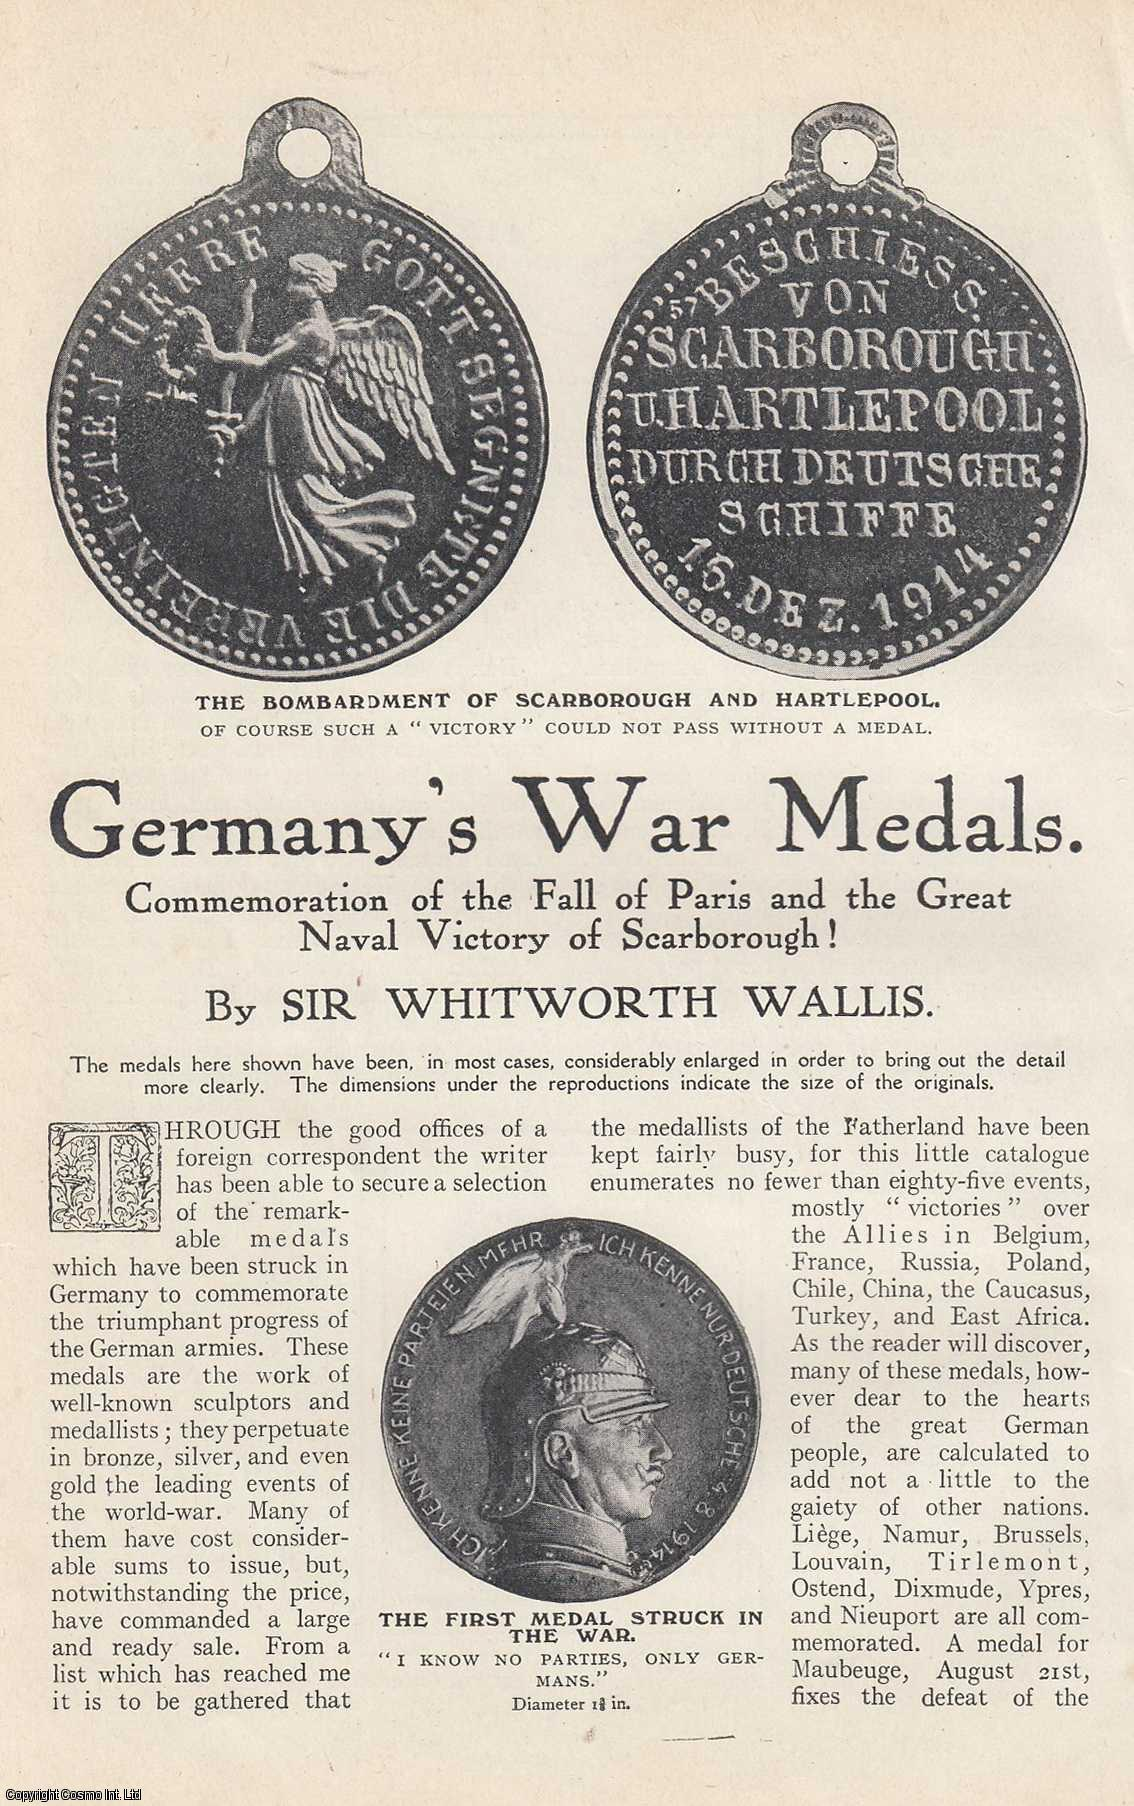 WALLIS, WHITWORTH - Germany's War Medals. Commemoration of The Fall of Paris and The Great Naval Victory of Scarborough. A rare original article from The Strand Magazine, 1915.